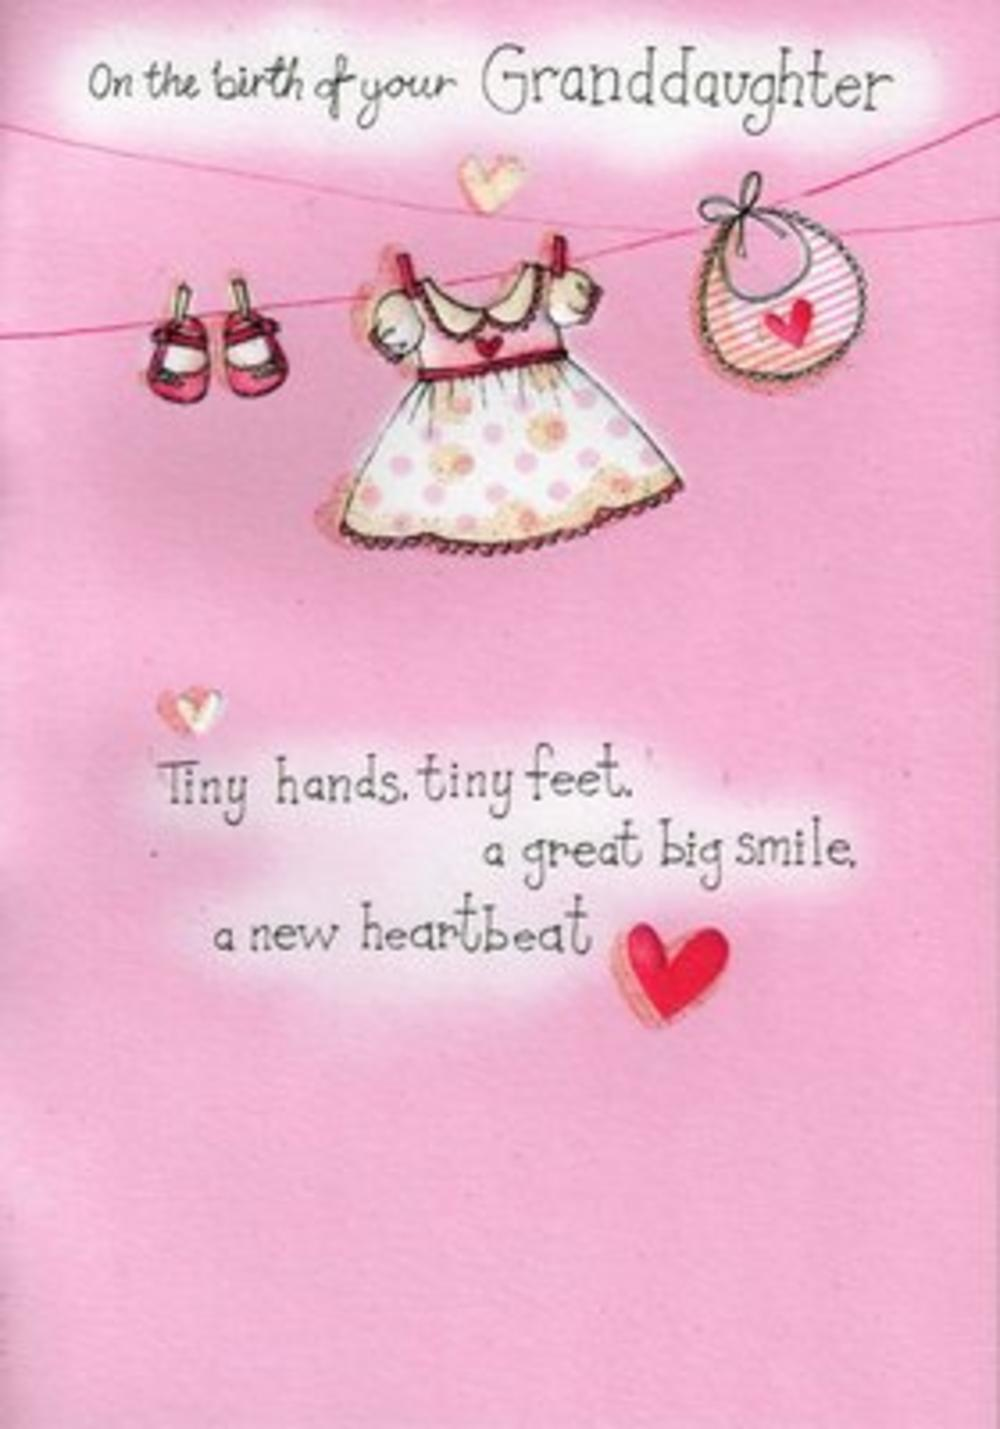 New Baby Greeting Card Verses Images Greetings Card Design Simple